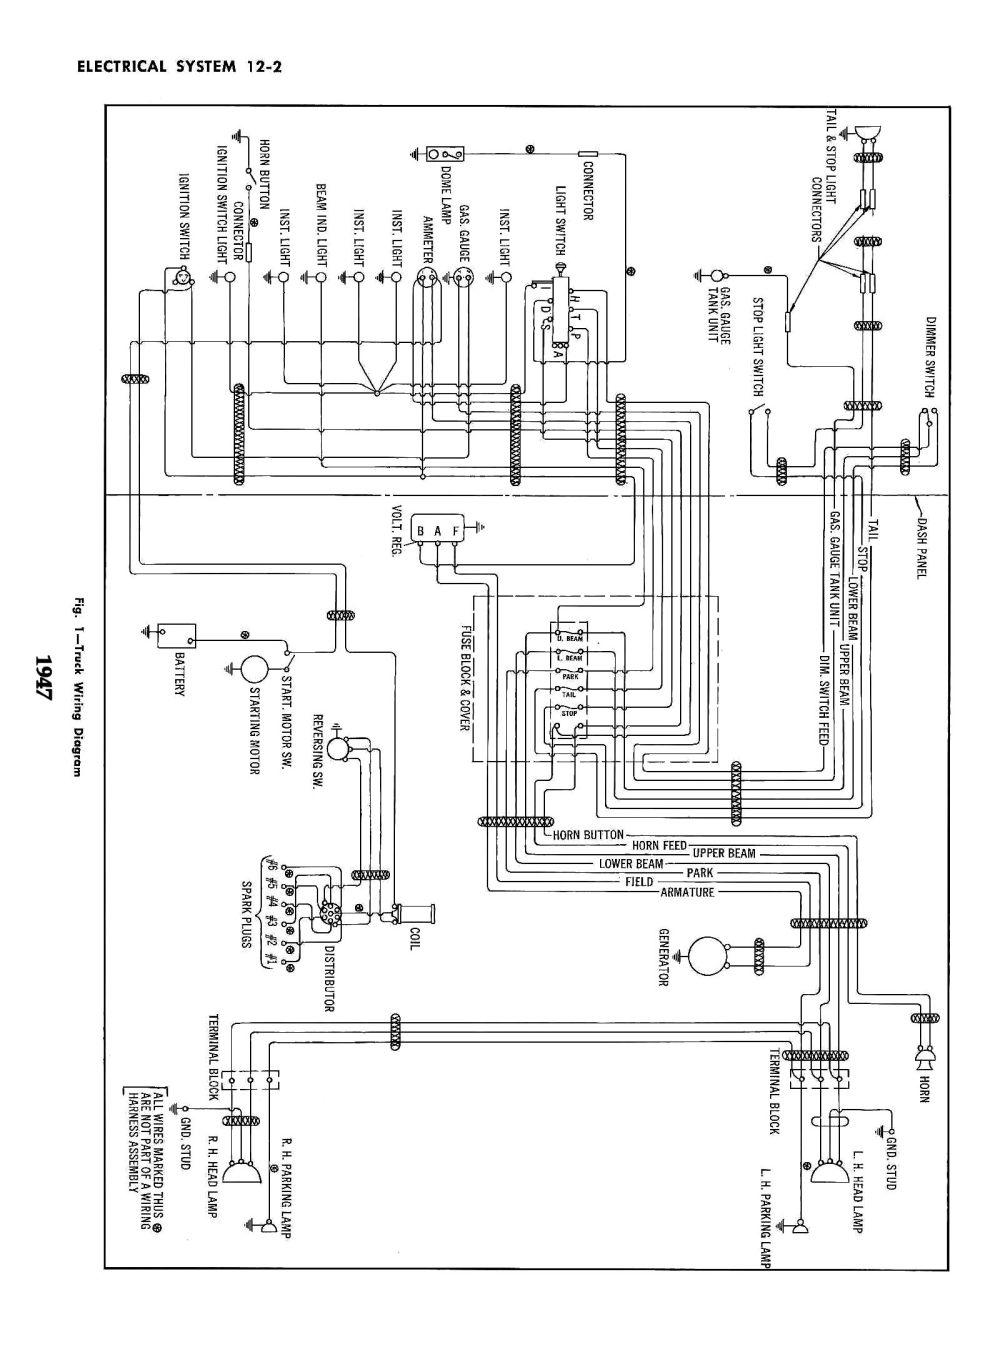 medium resolution of 1953 willys wiring diagram simple wiring schema 1959 willys wagon wiring diagram 1953 jeep wiring diagram